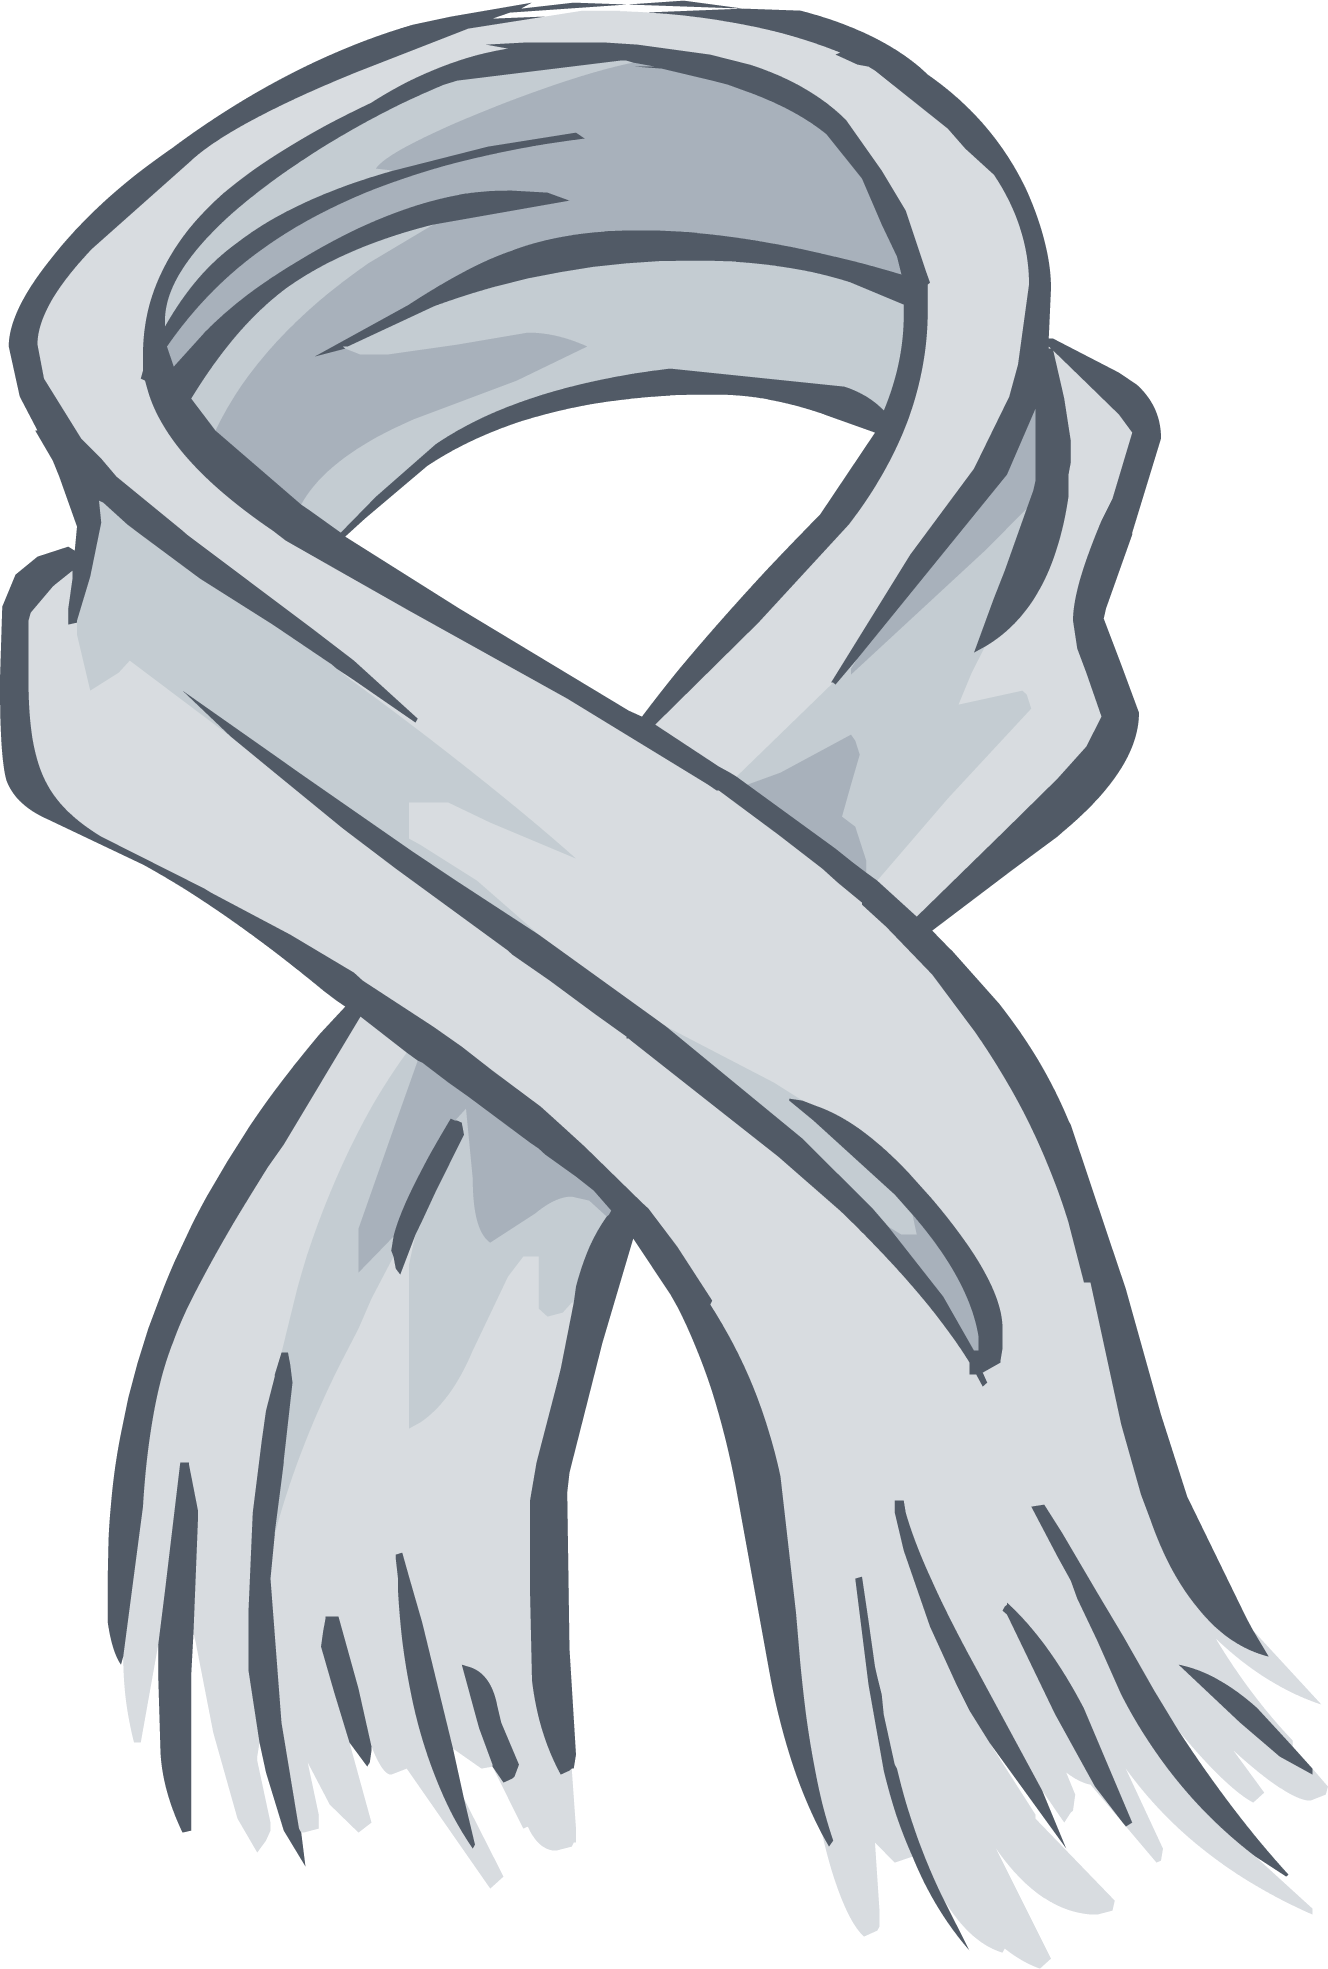 clip art library Muffler pencil and in. Mitten clipart scarf.